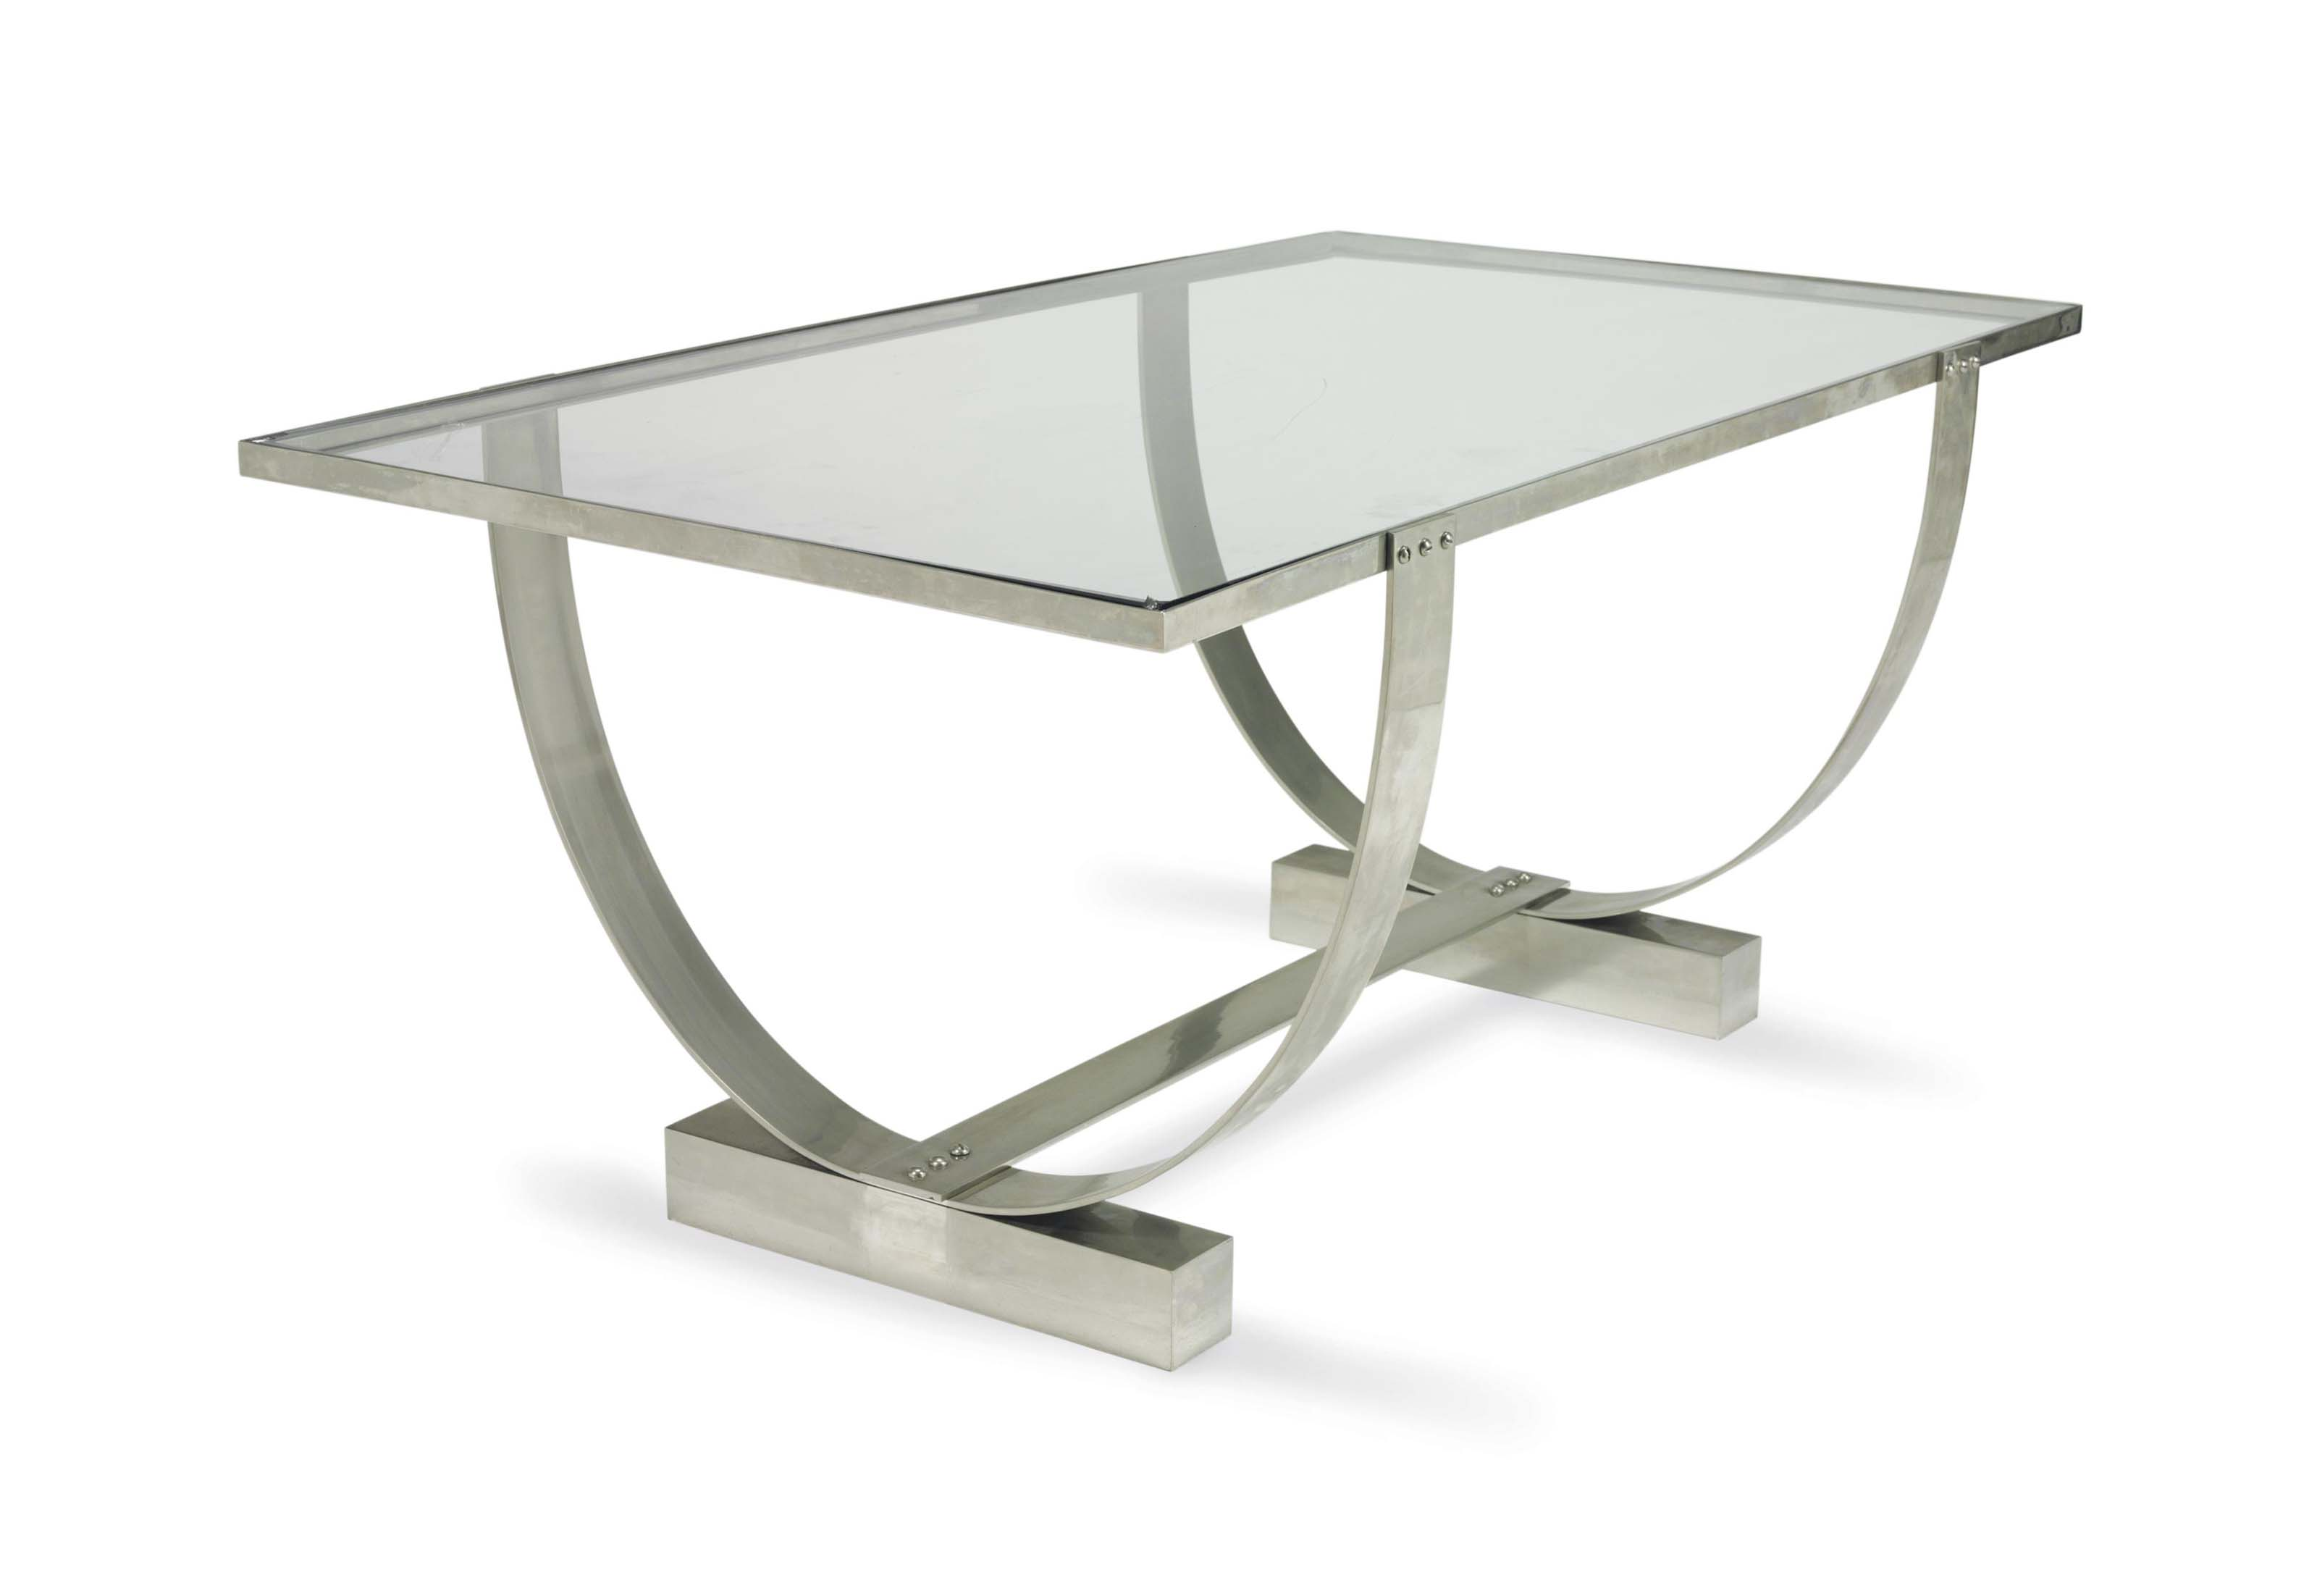 A CHROMED METAL AND GLASS LOW TABLE,